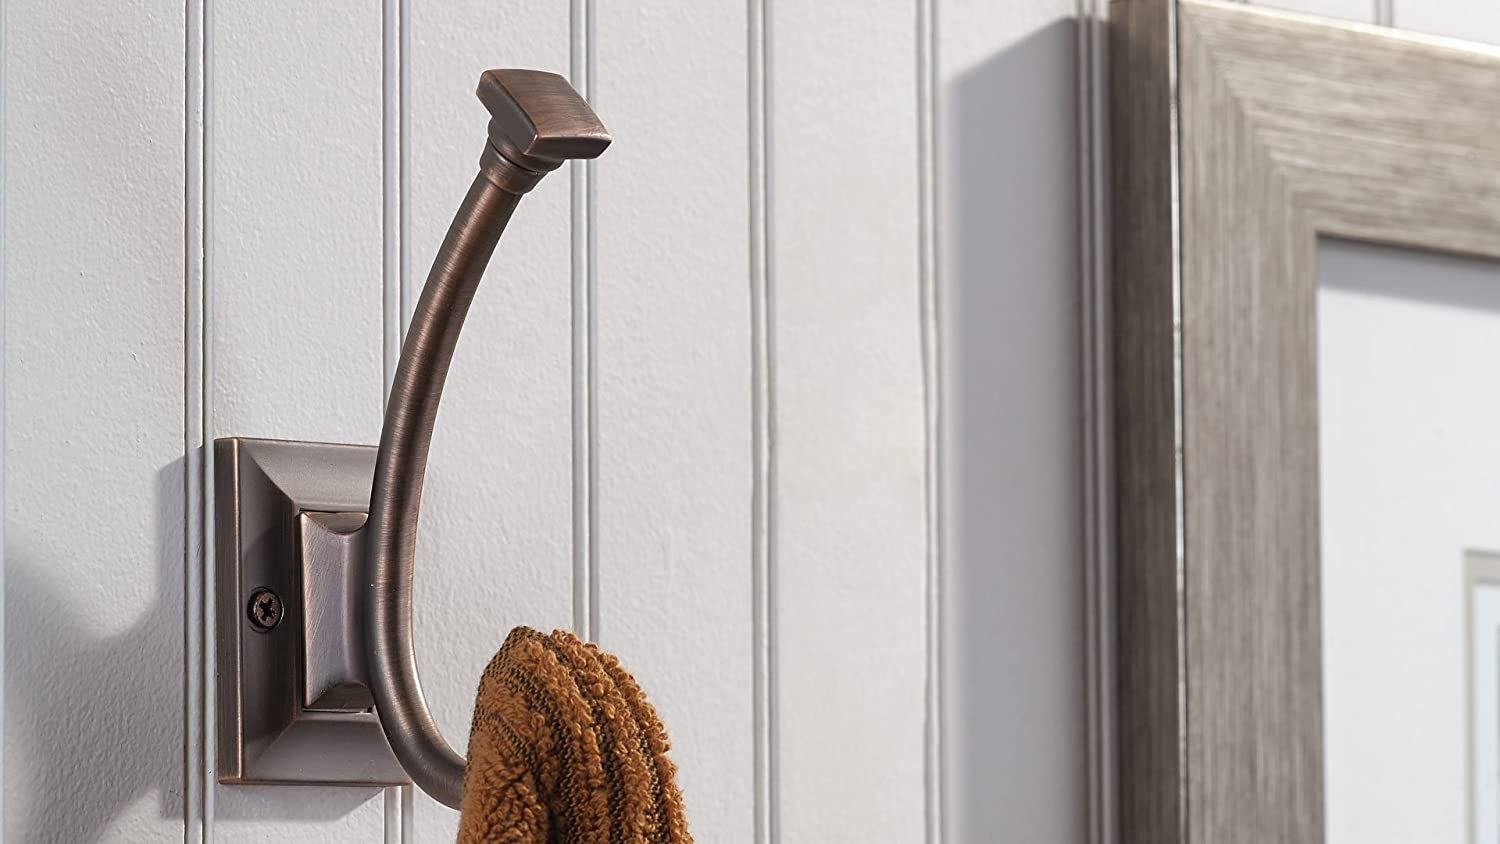 Brushed Oil-Rubbed Bronze Finish Richelieu Hardware RH1243021BORB Transitional Metal Hook